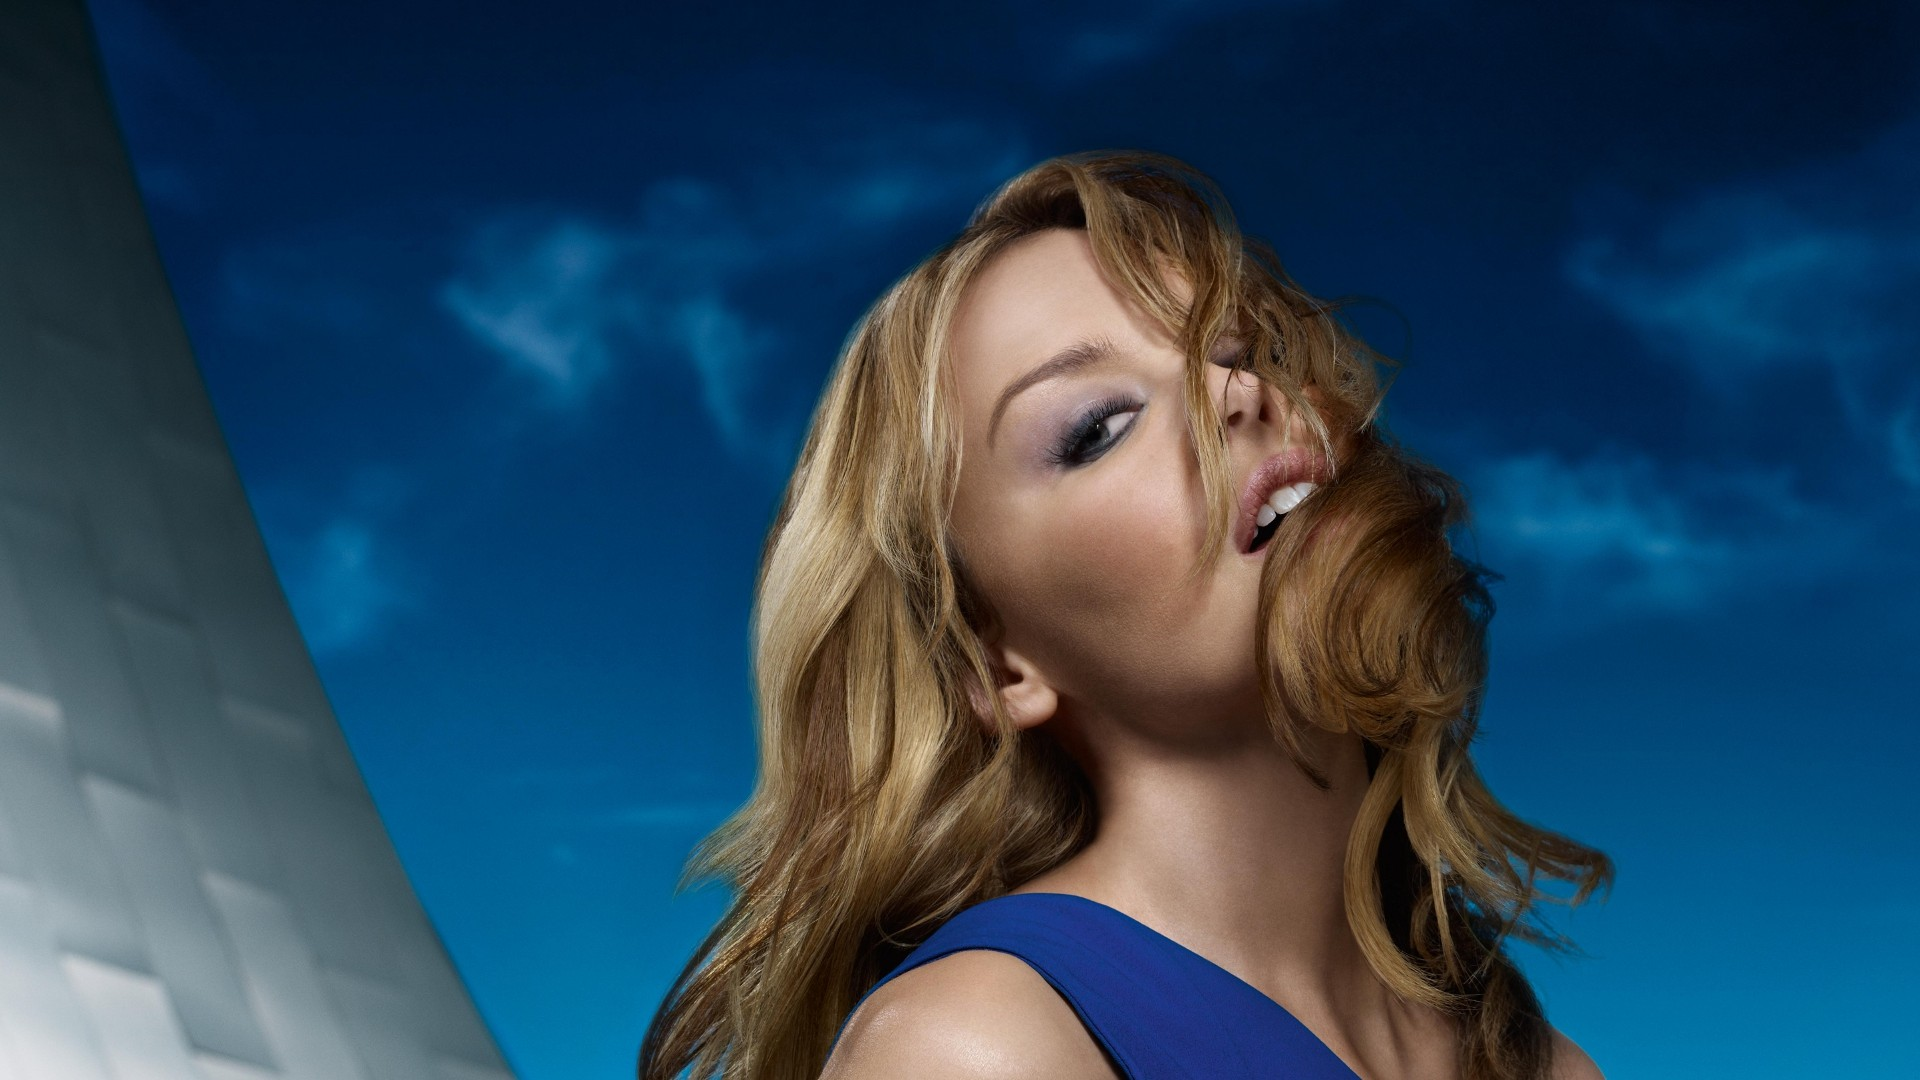 Kylie Minogue  hd wallpaper Wallpaper